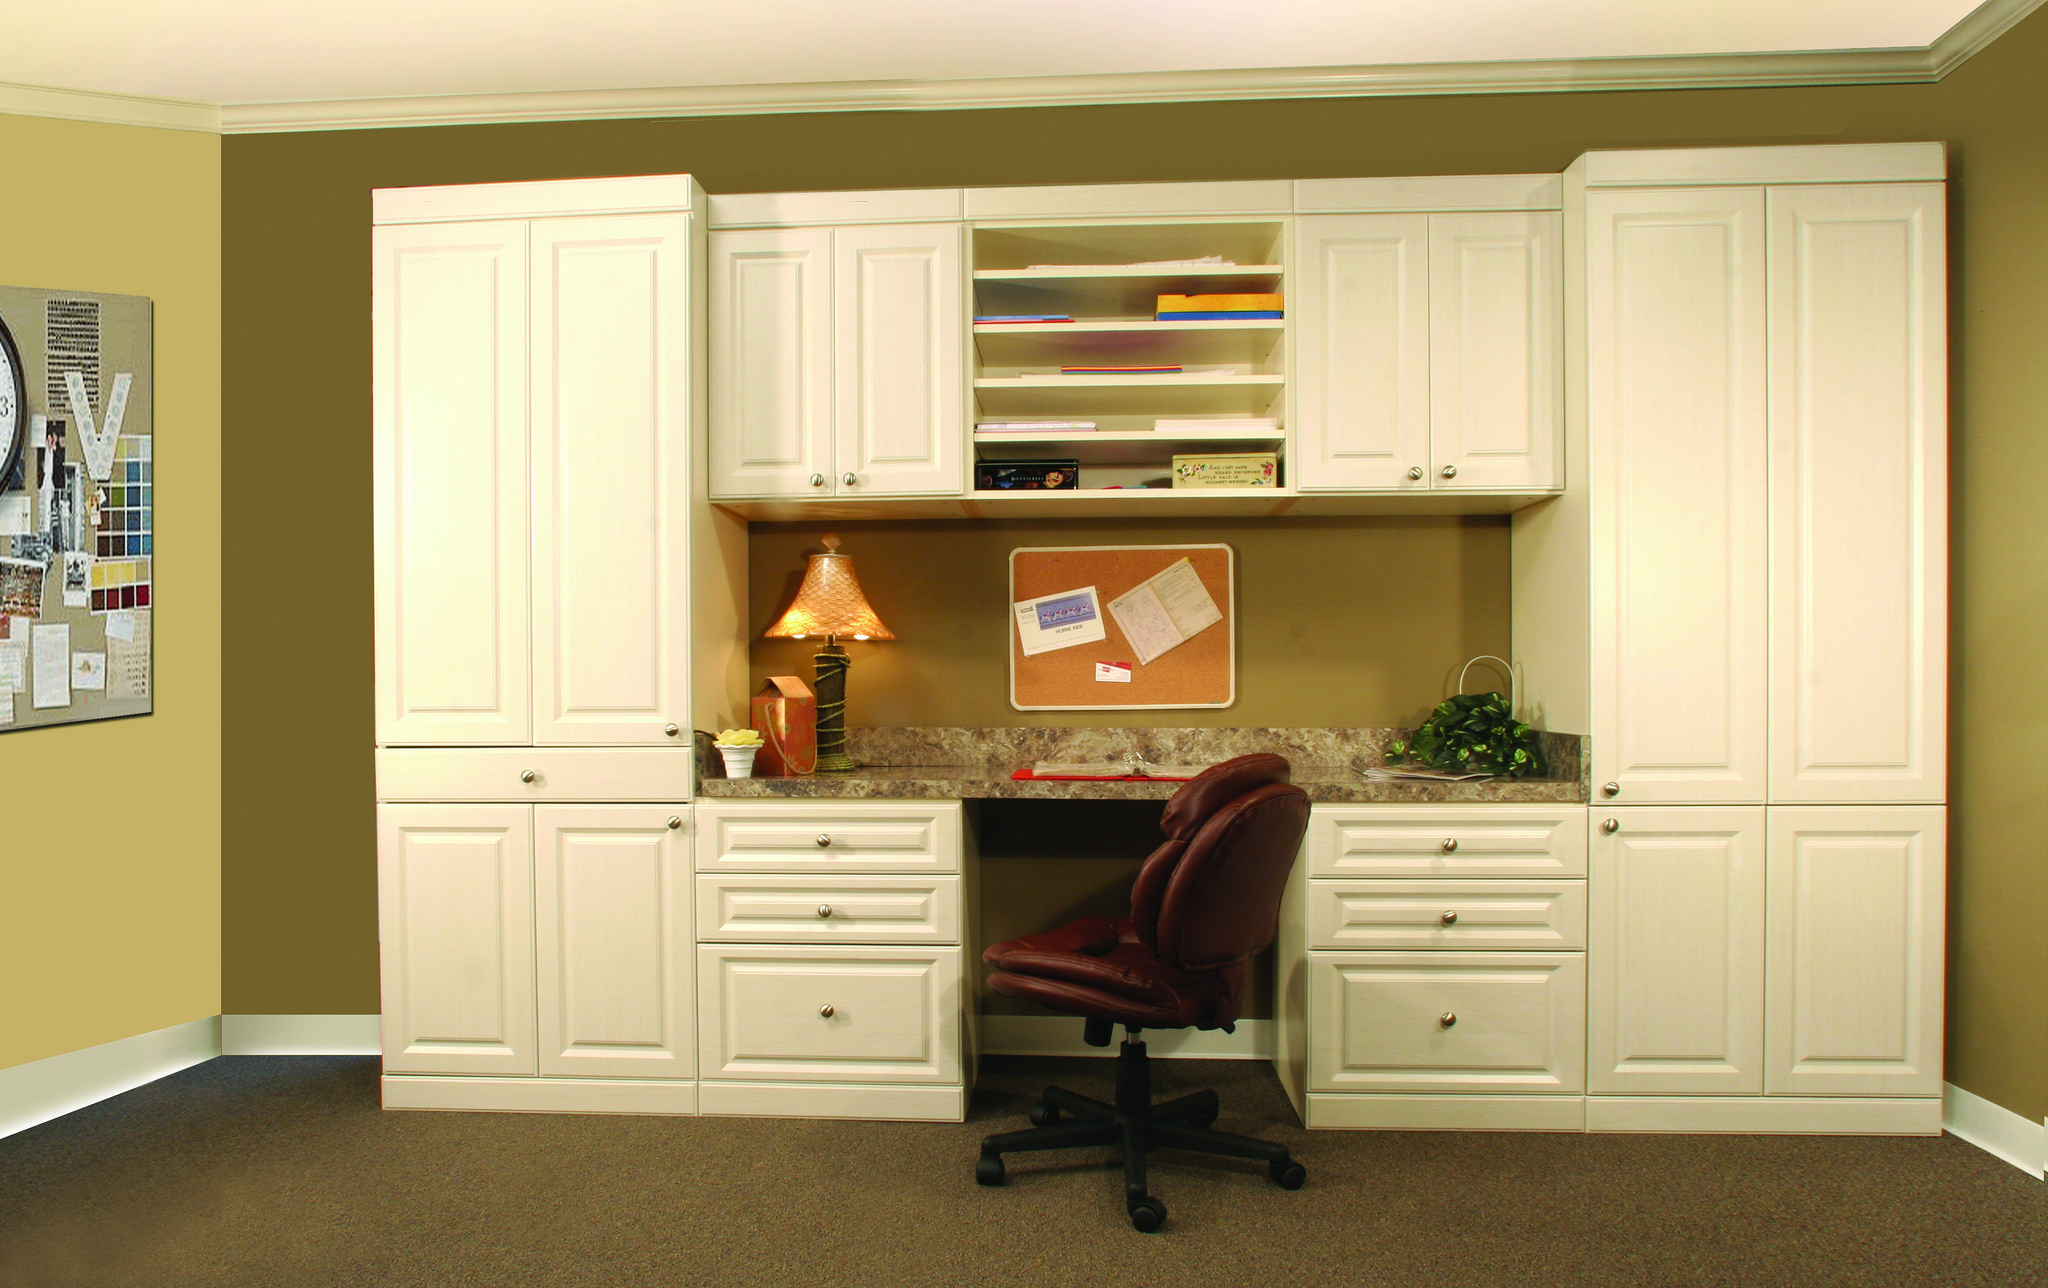 Storage Solutions For Craft Rooms From More Space Place